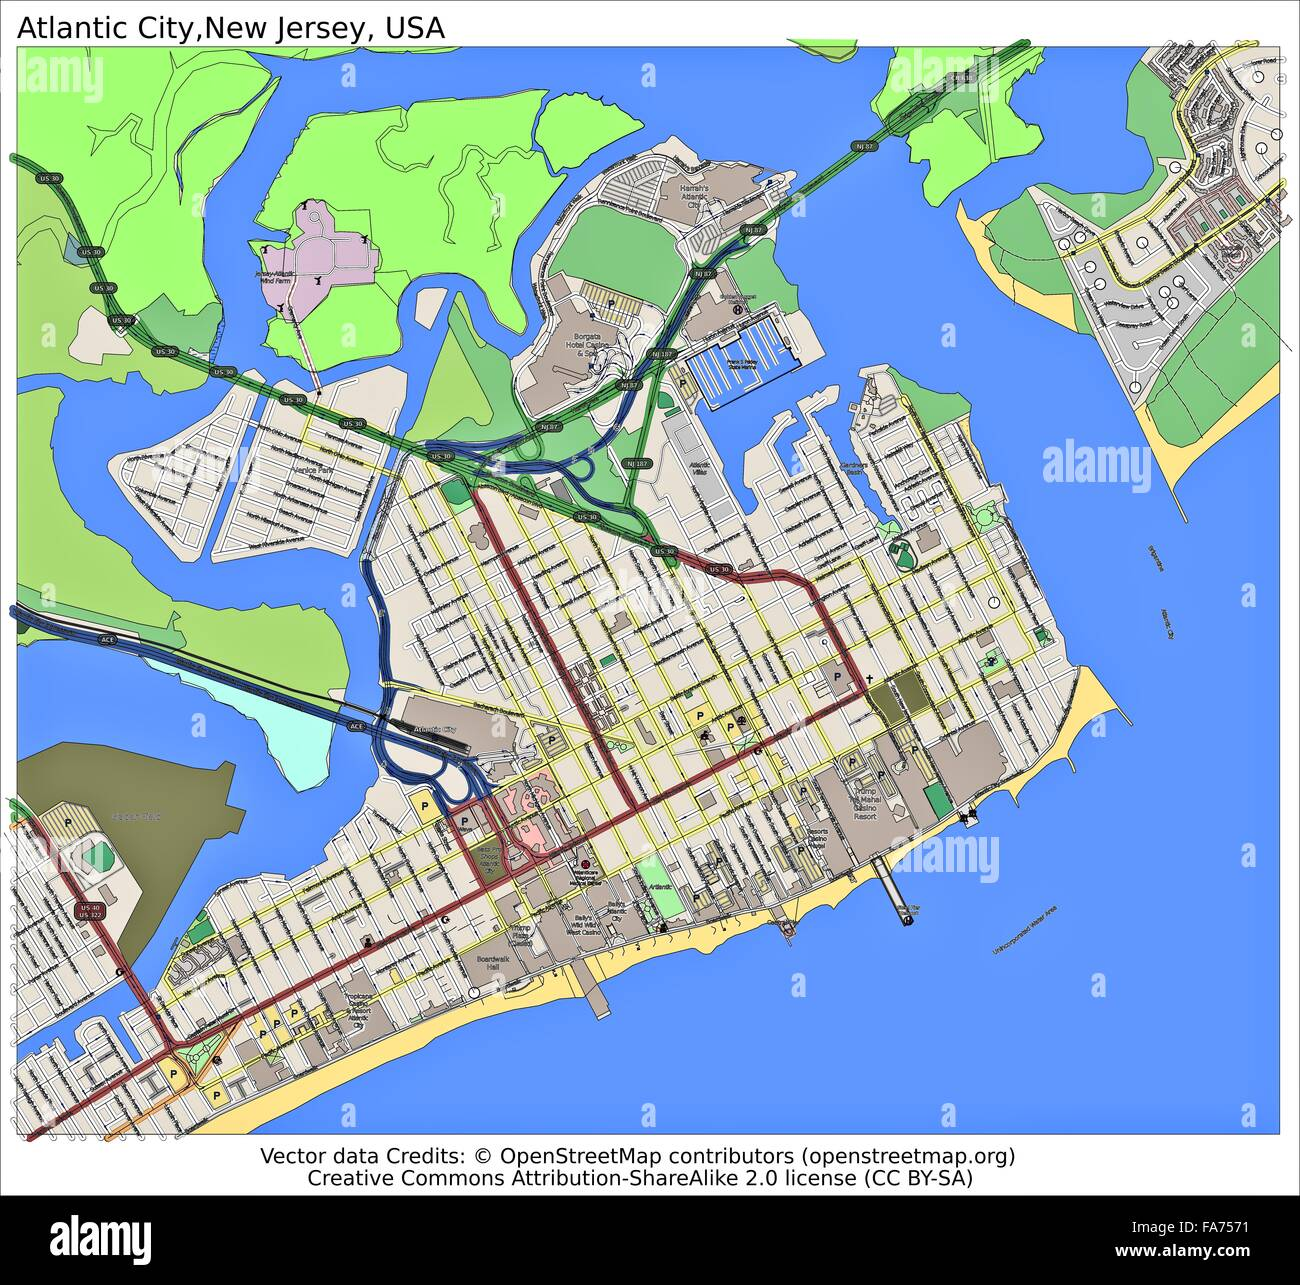 Atlantic City New Jersey USA location map Stock Photo 92356181 Alamy